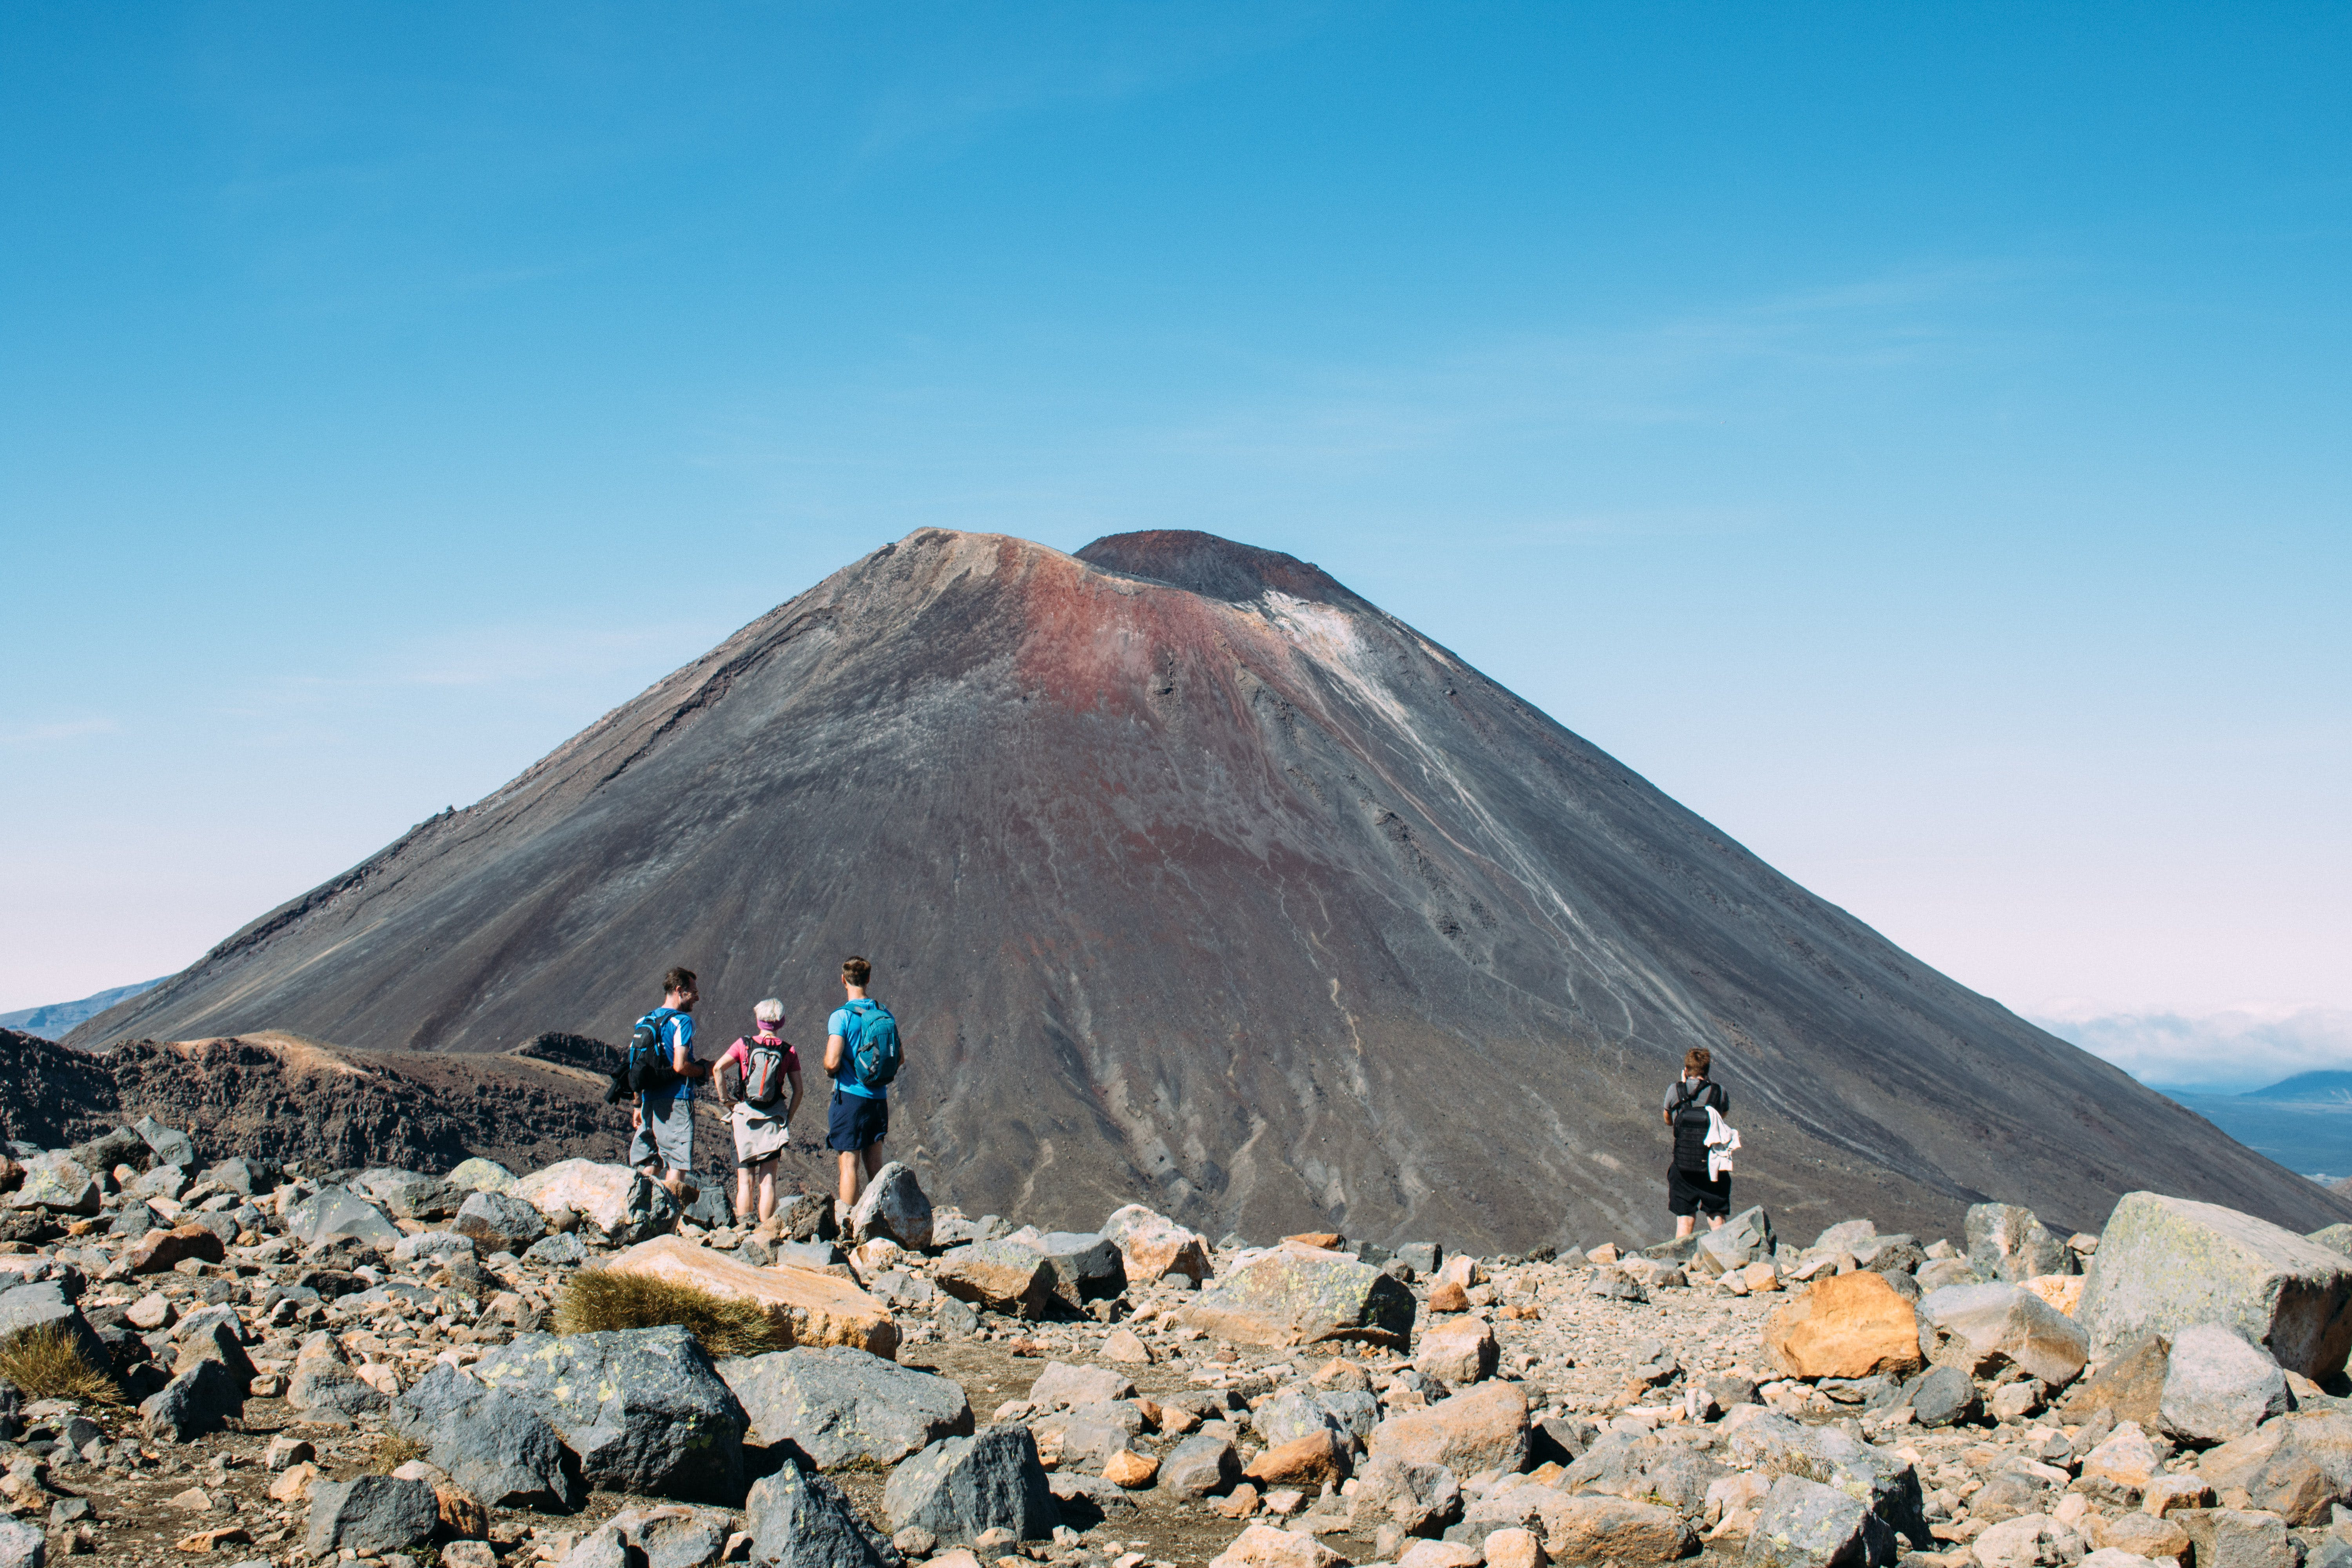 tongariro crossing - must do taupo activities